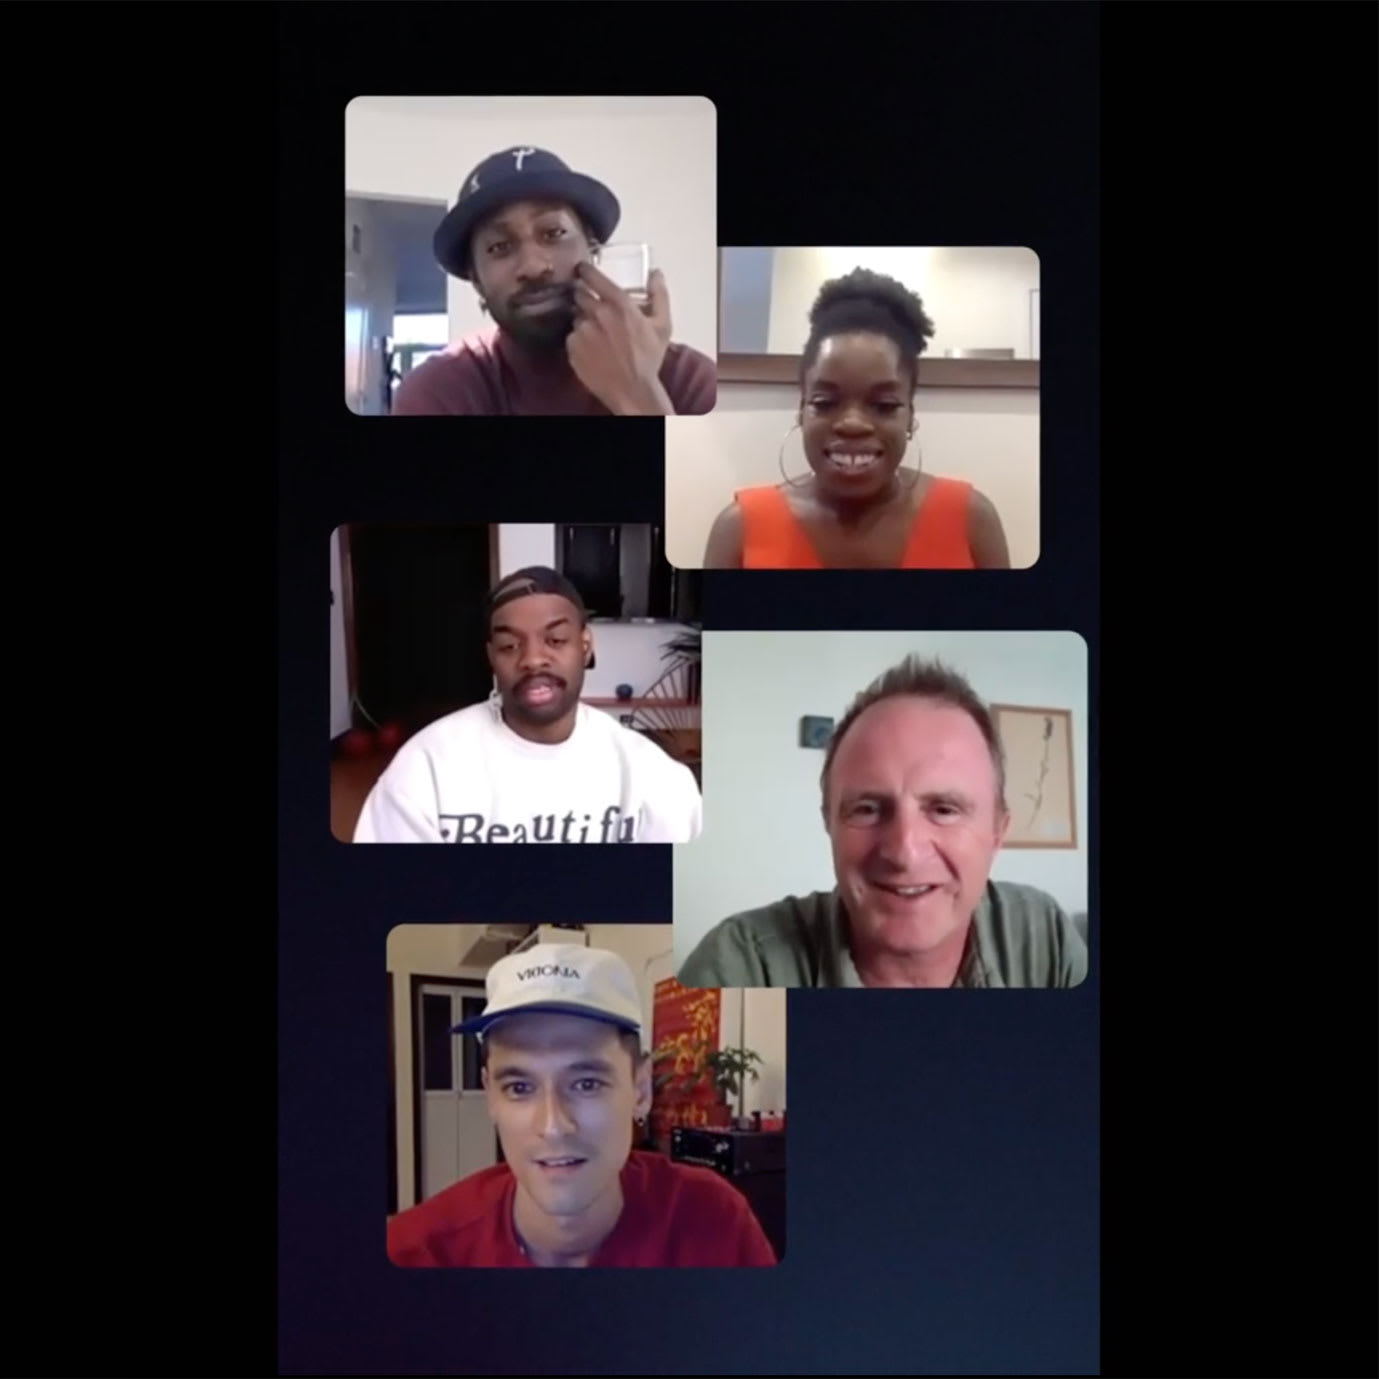 Five people having a video call conversation.